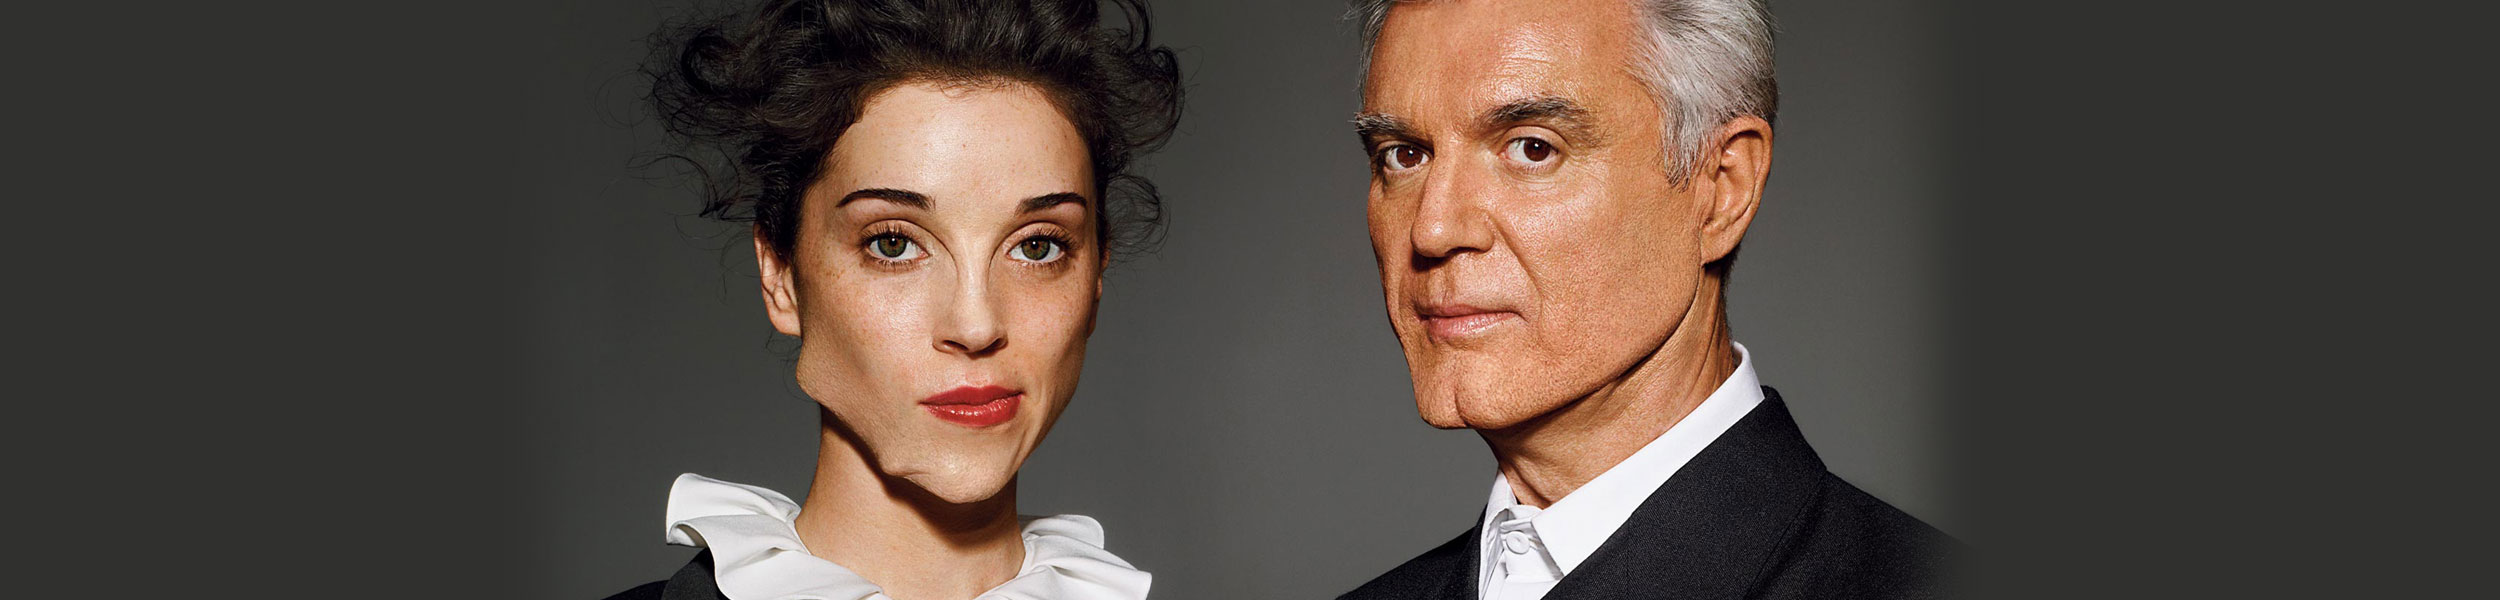 David Byrne & St. Vincent - The Year In Review: David Byrne & St. Vincent - Love This Giant